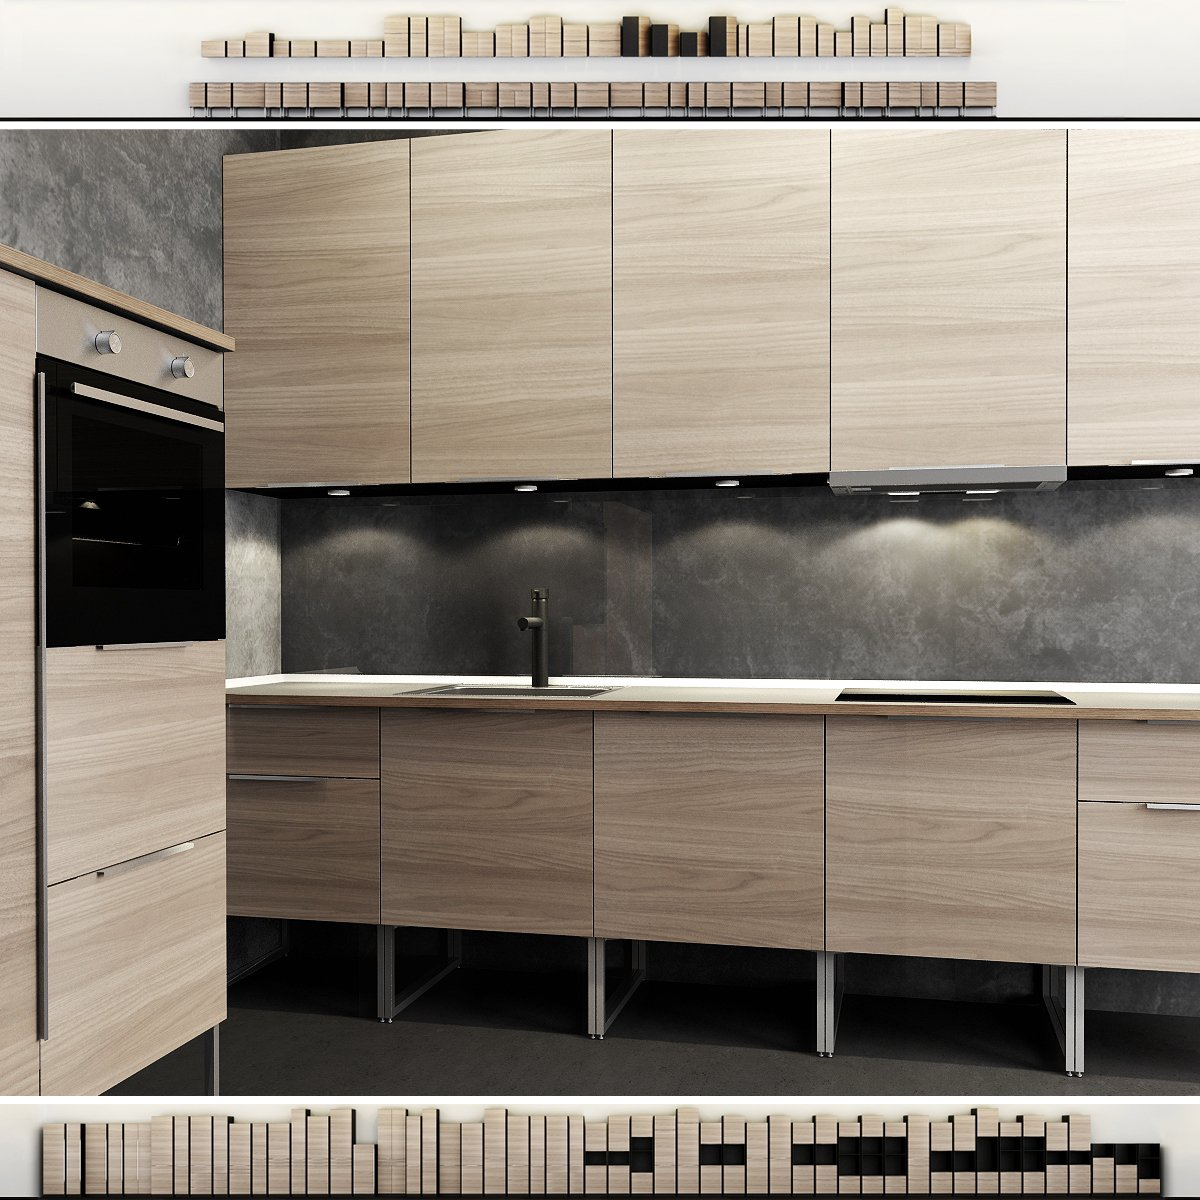 Küche Ikea Modelle Ikea Kitchen Furniture 3d Modell In Küche 3dexport